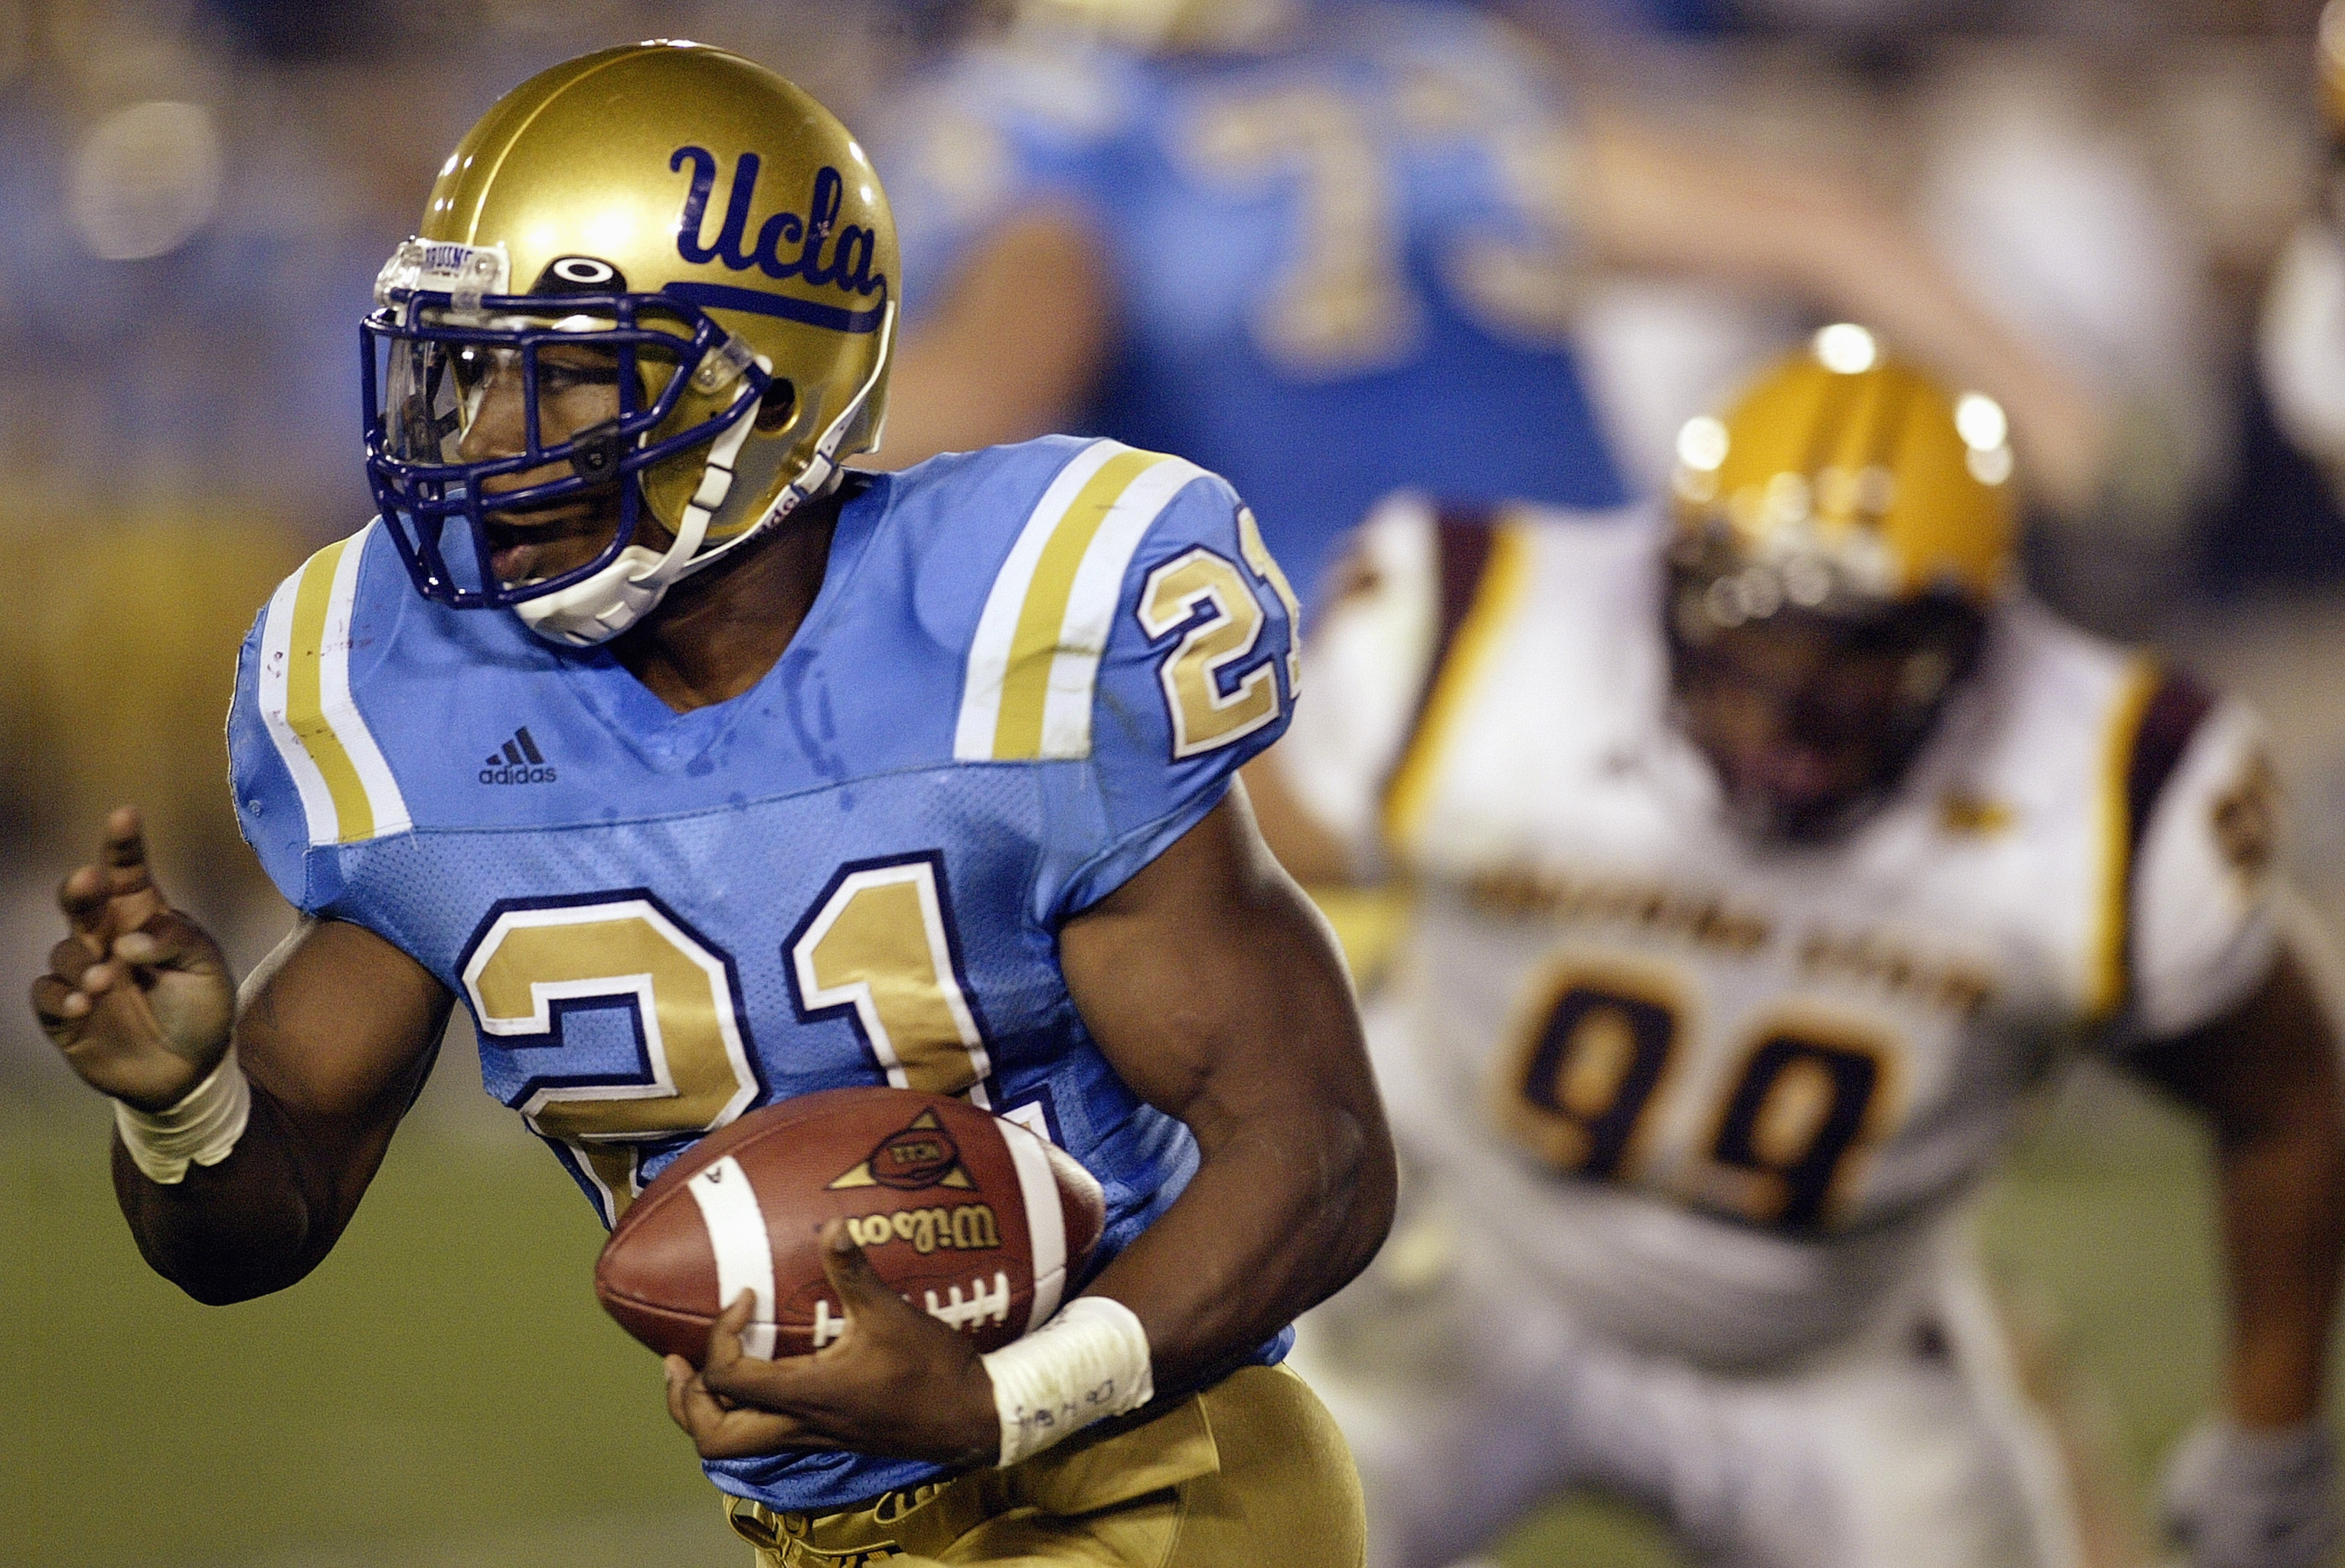 PASADENA, CA - October 25:  Running Maurice Drew #21 of the UCLA Bruins runs for yardage against the Arizona State Sun Devils on October 25, 2003 at the Rose Bowl in Pasadena, California.  UCLA defeated Arizona State 20-13. (Photo by Stephen Dunn/Getty Im